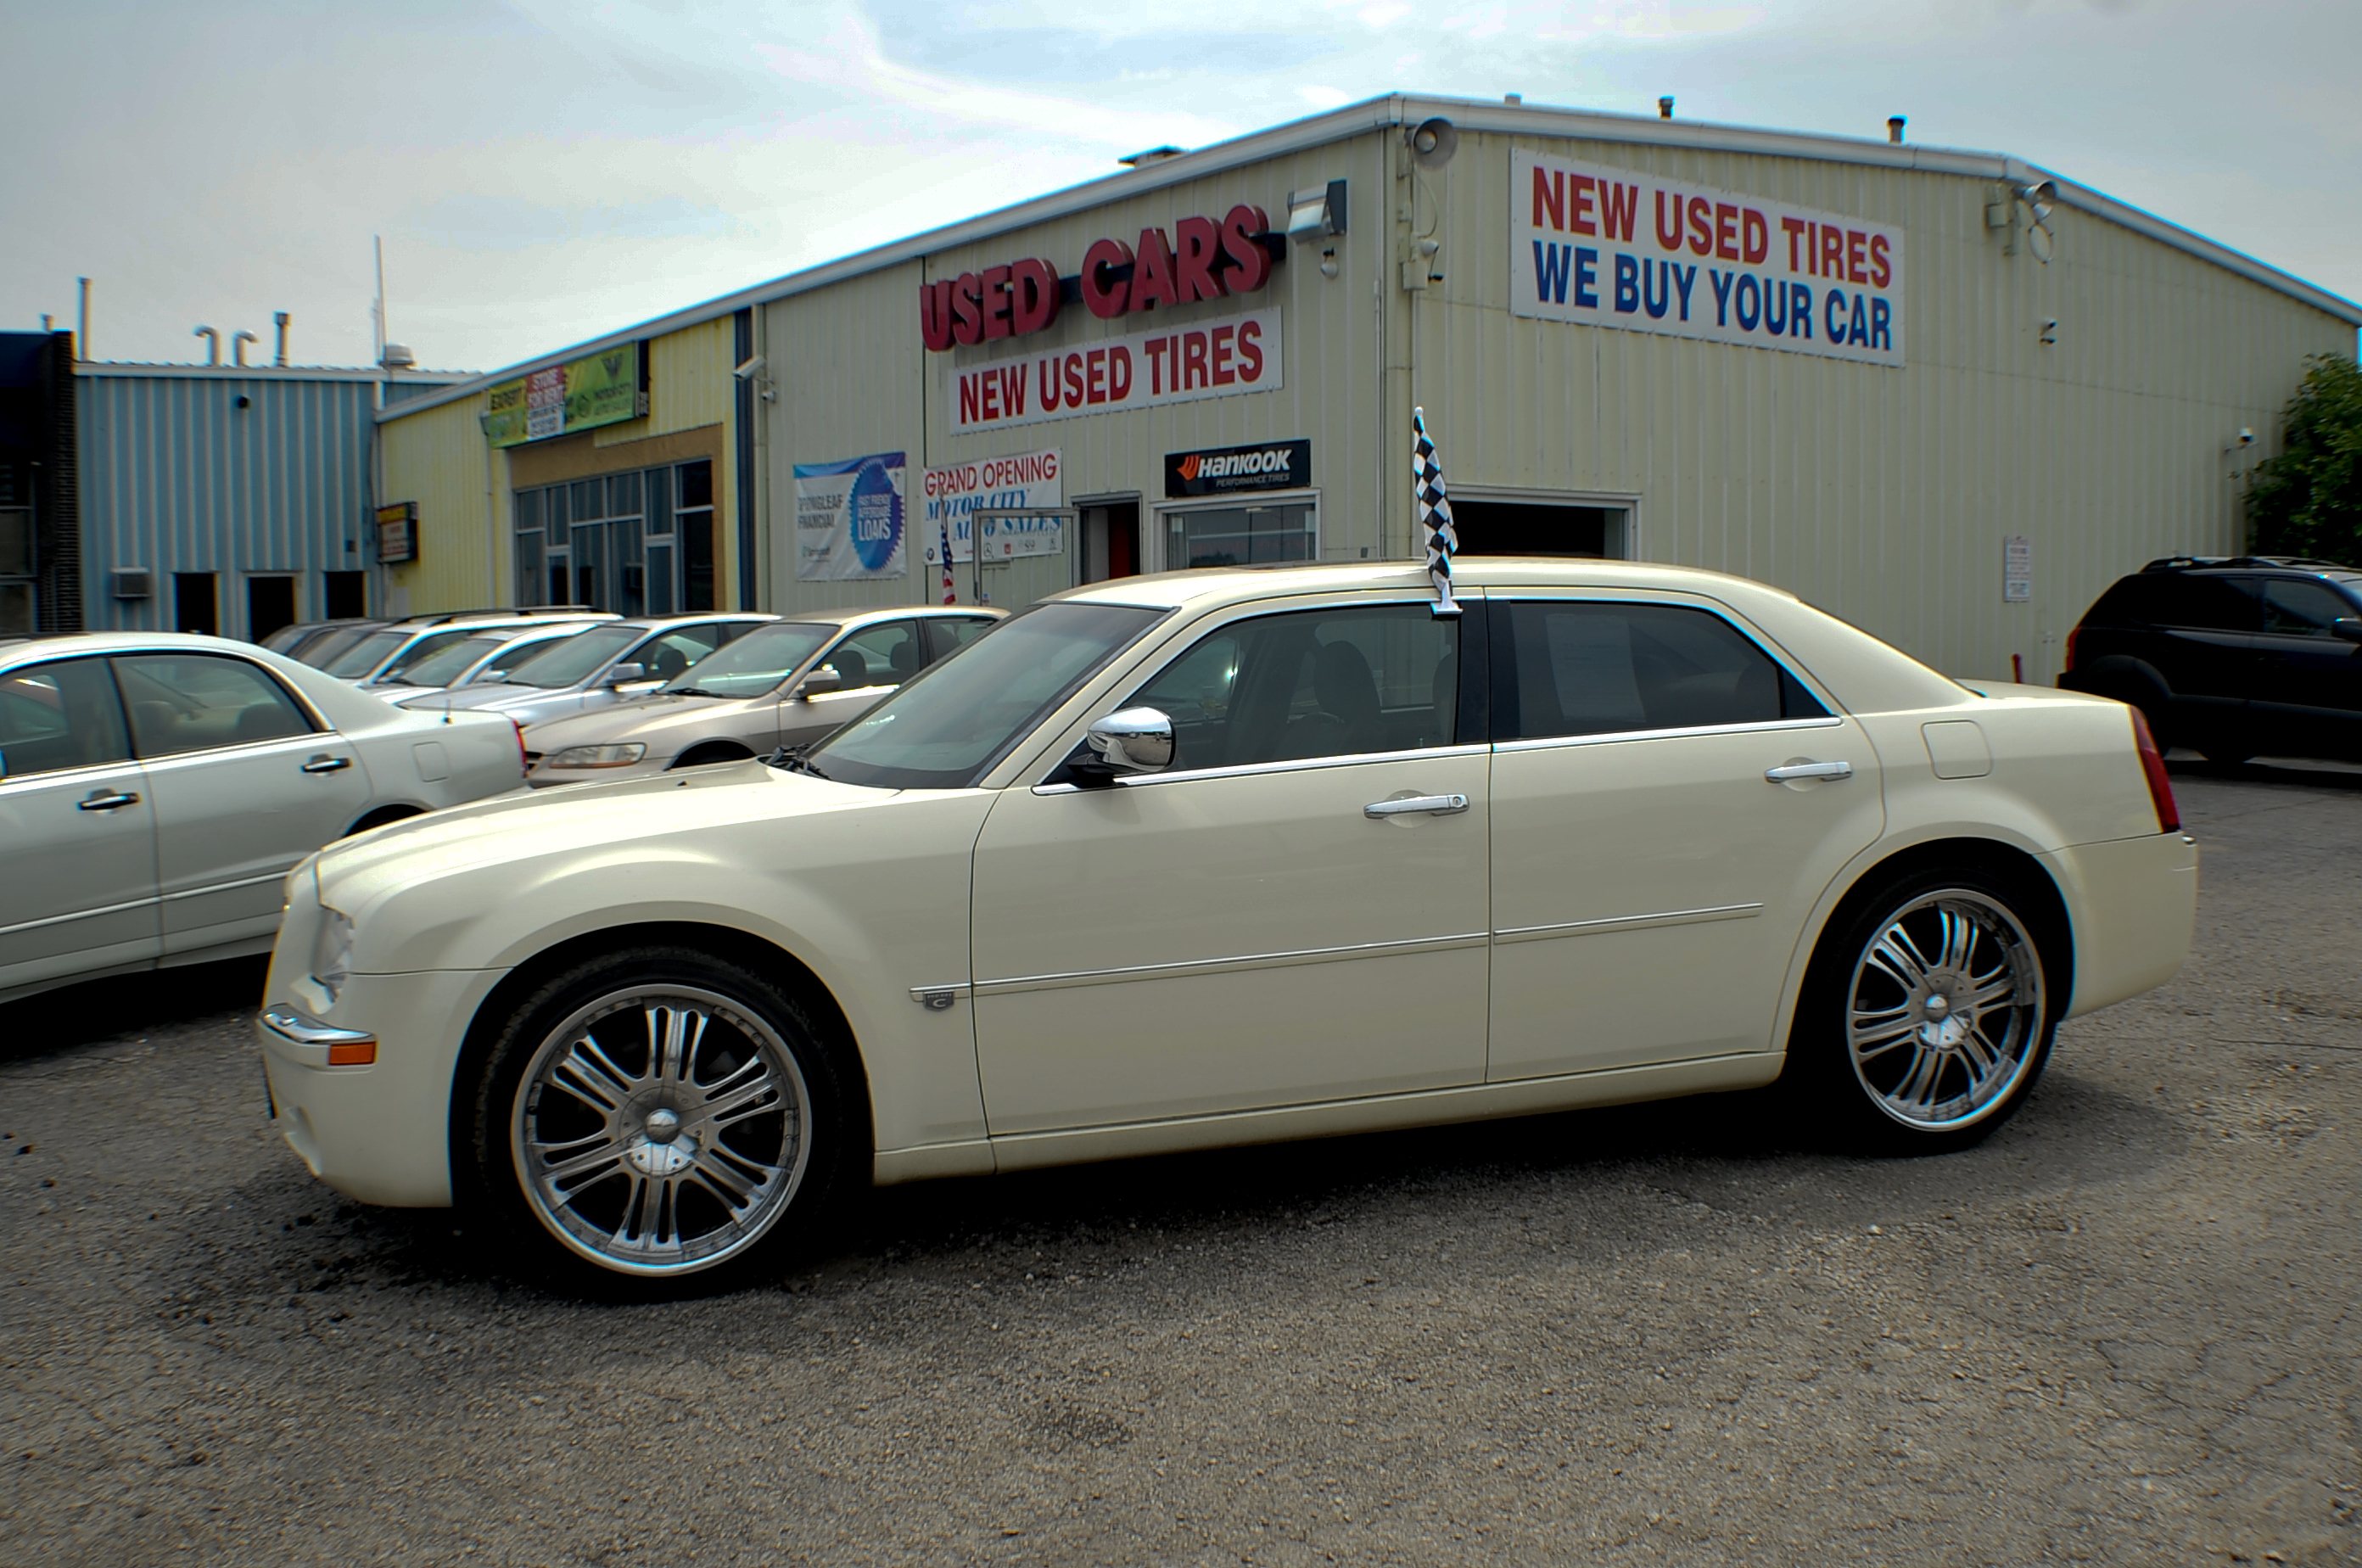 2006 Chrysler 300c Hemi Navigation White Sports Sedan Use Car